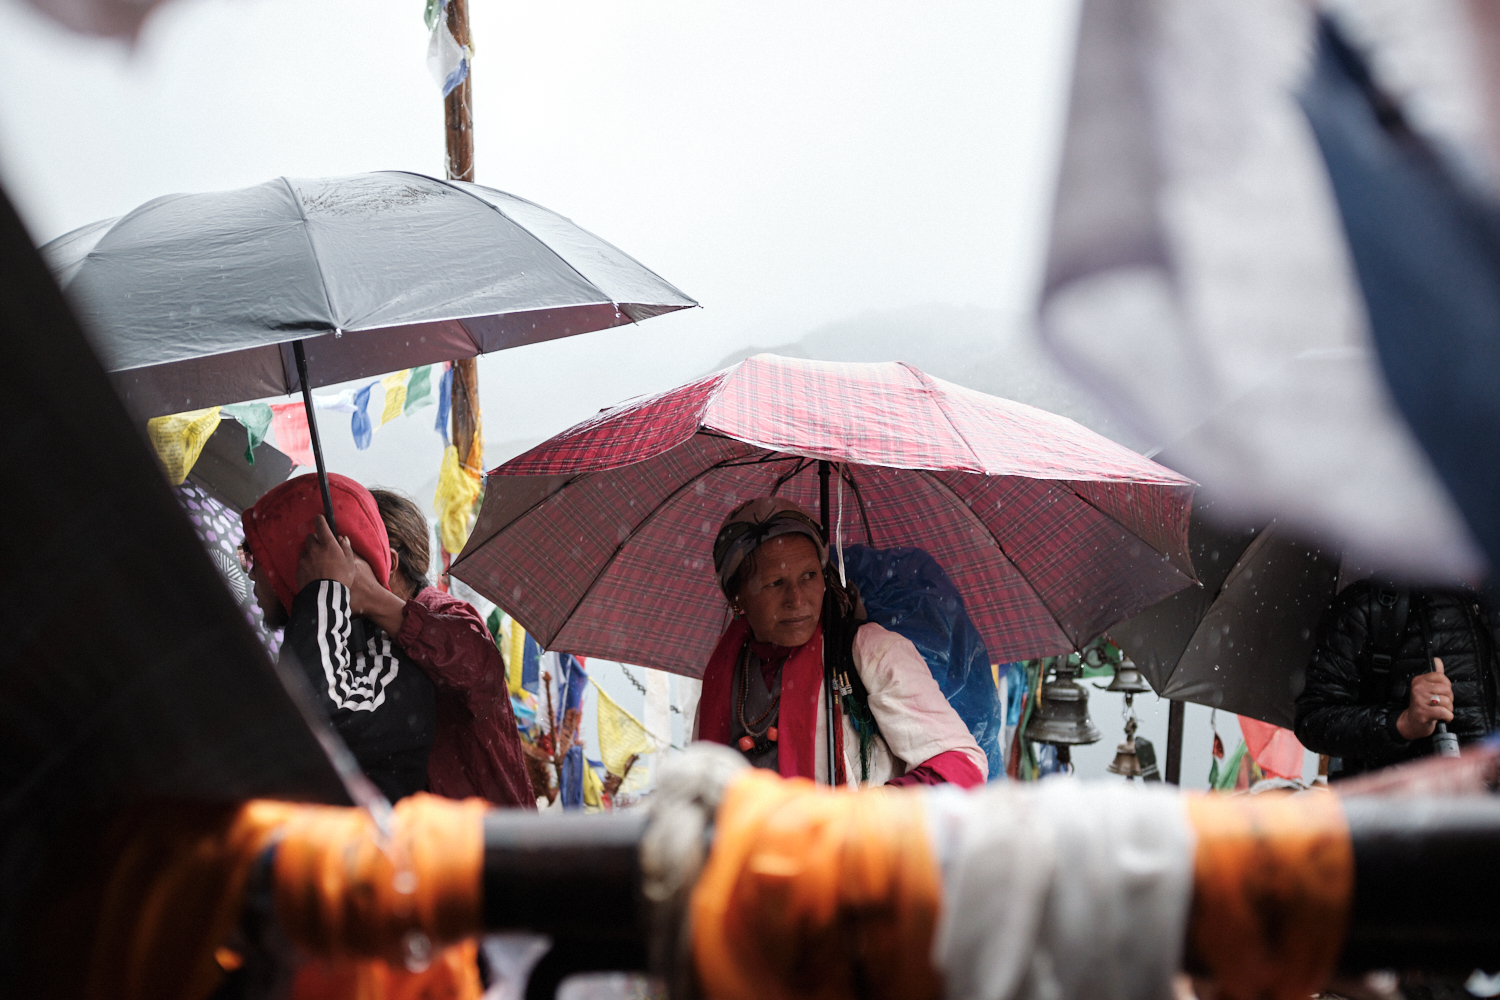 A woman holds an umbrella as she arrives at the Shiva temple to observe the shaman festival